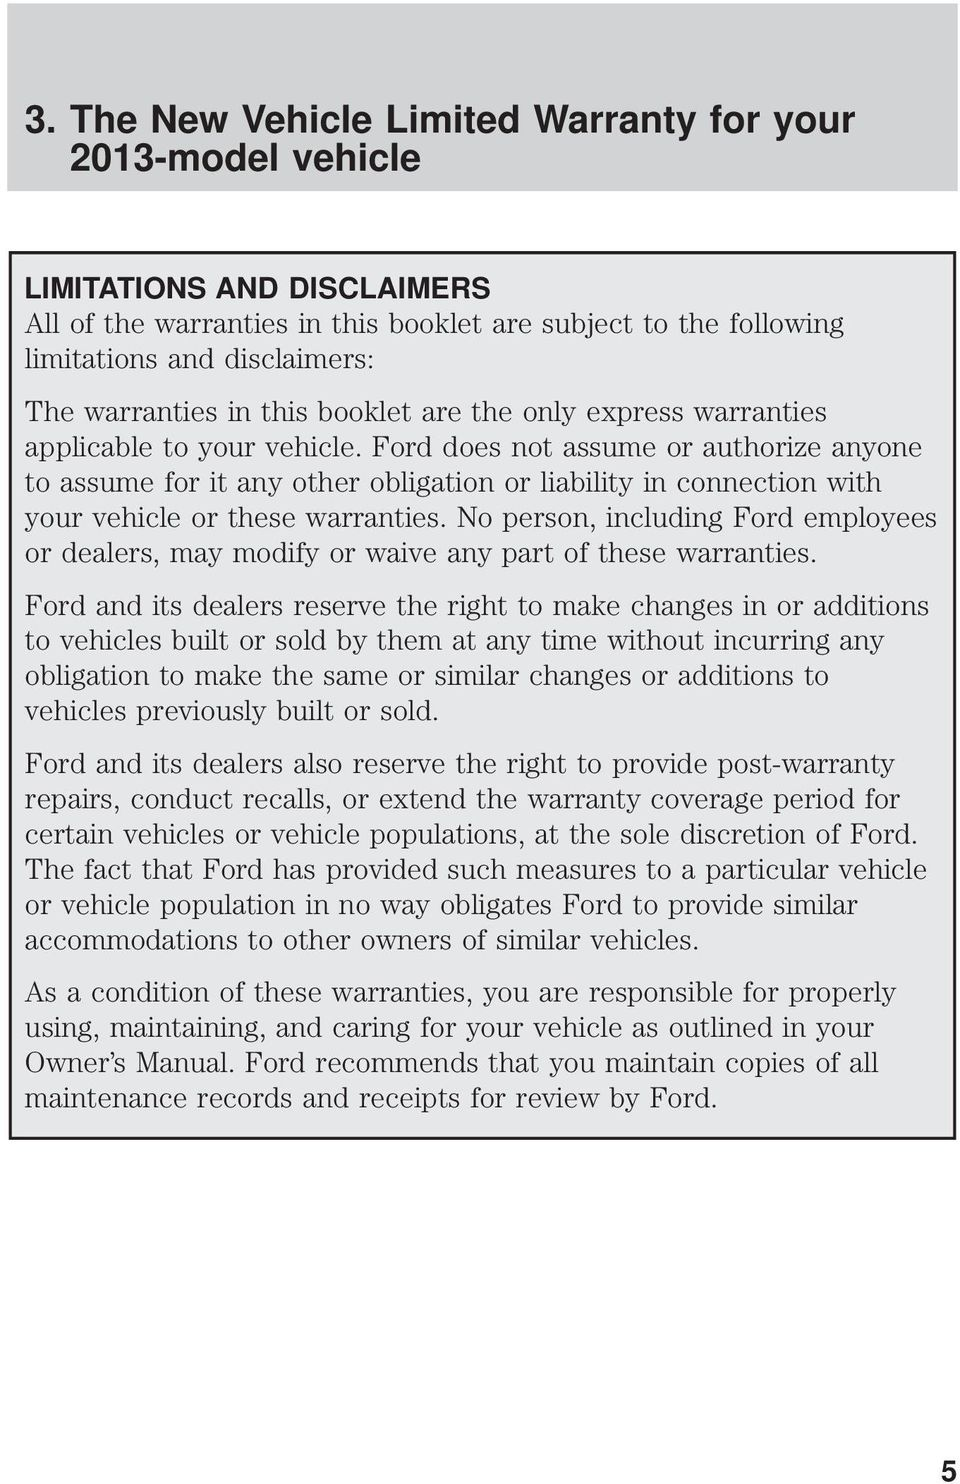 Ford does not assume or authorize anyone to assume for it any other obligation or liability in connection with your vehicle or these warranties.